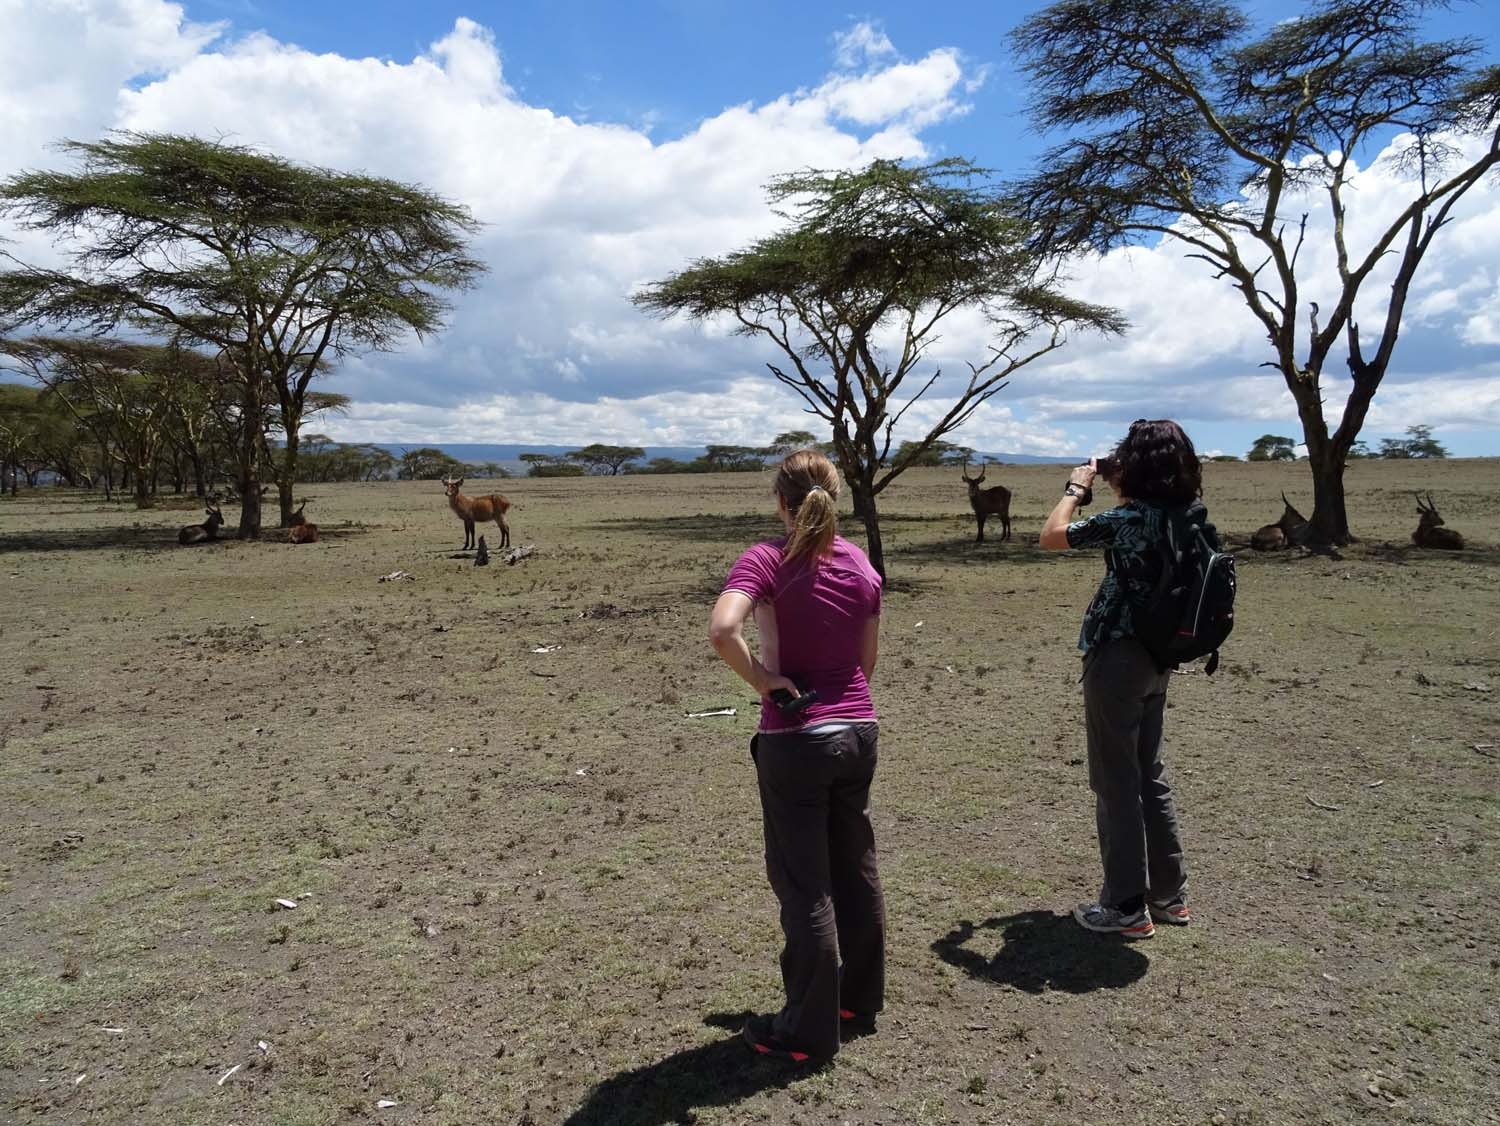 walking safari on Crescent Island with Kat, Jan and Paul - don't worry, no lions here